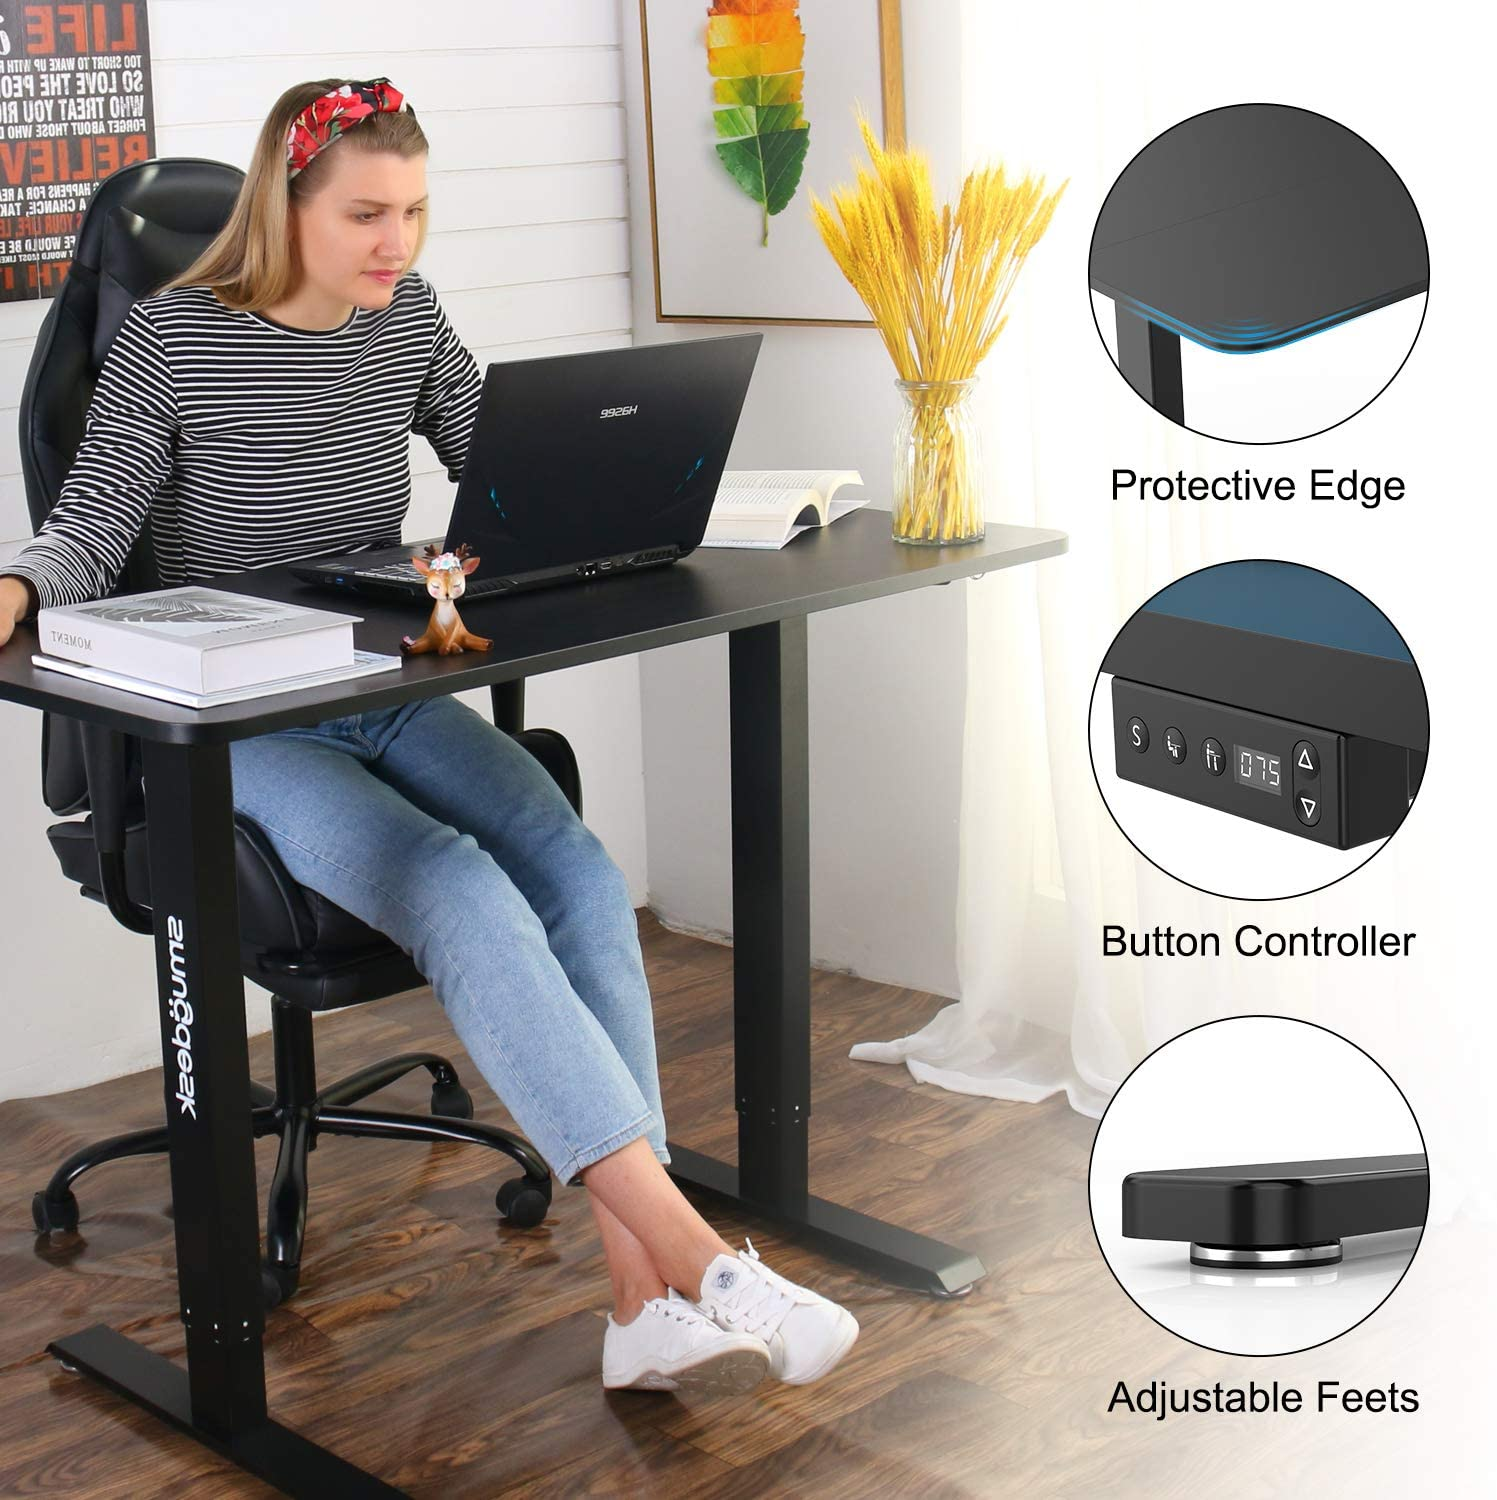 [US Direct] Original Smugdesk Standing Desk, 48 x 24 inches Computer Desk Electric Height Adjustable Table Home Office Desk with Splice Board and Black Frame